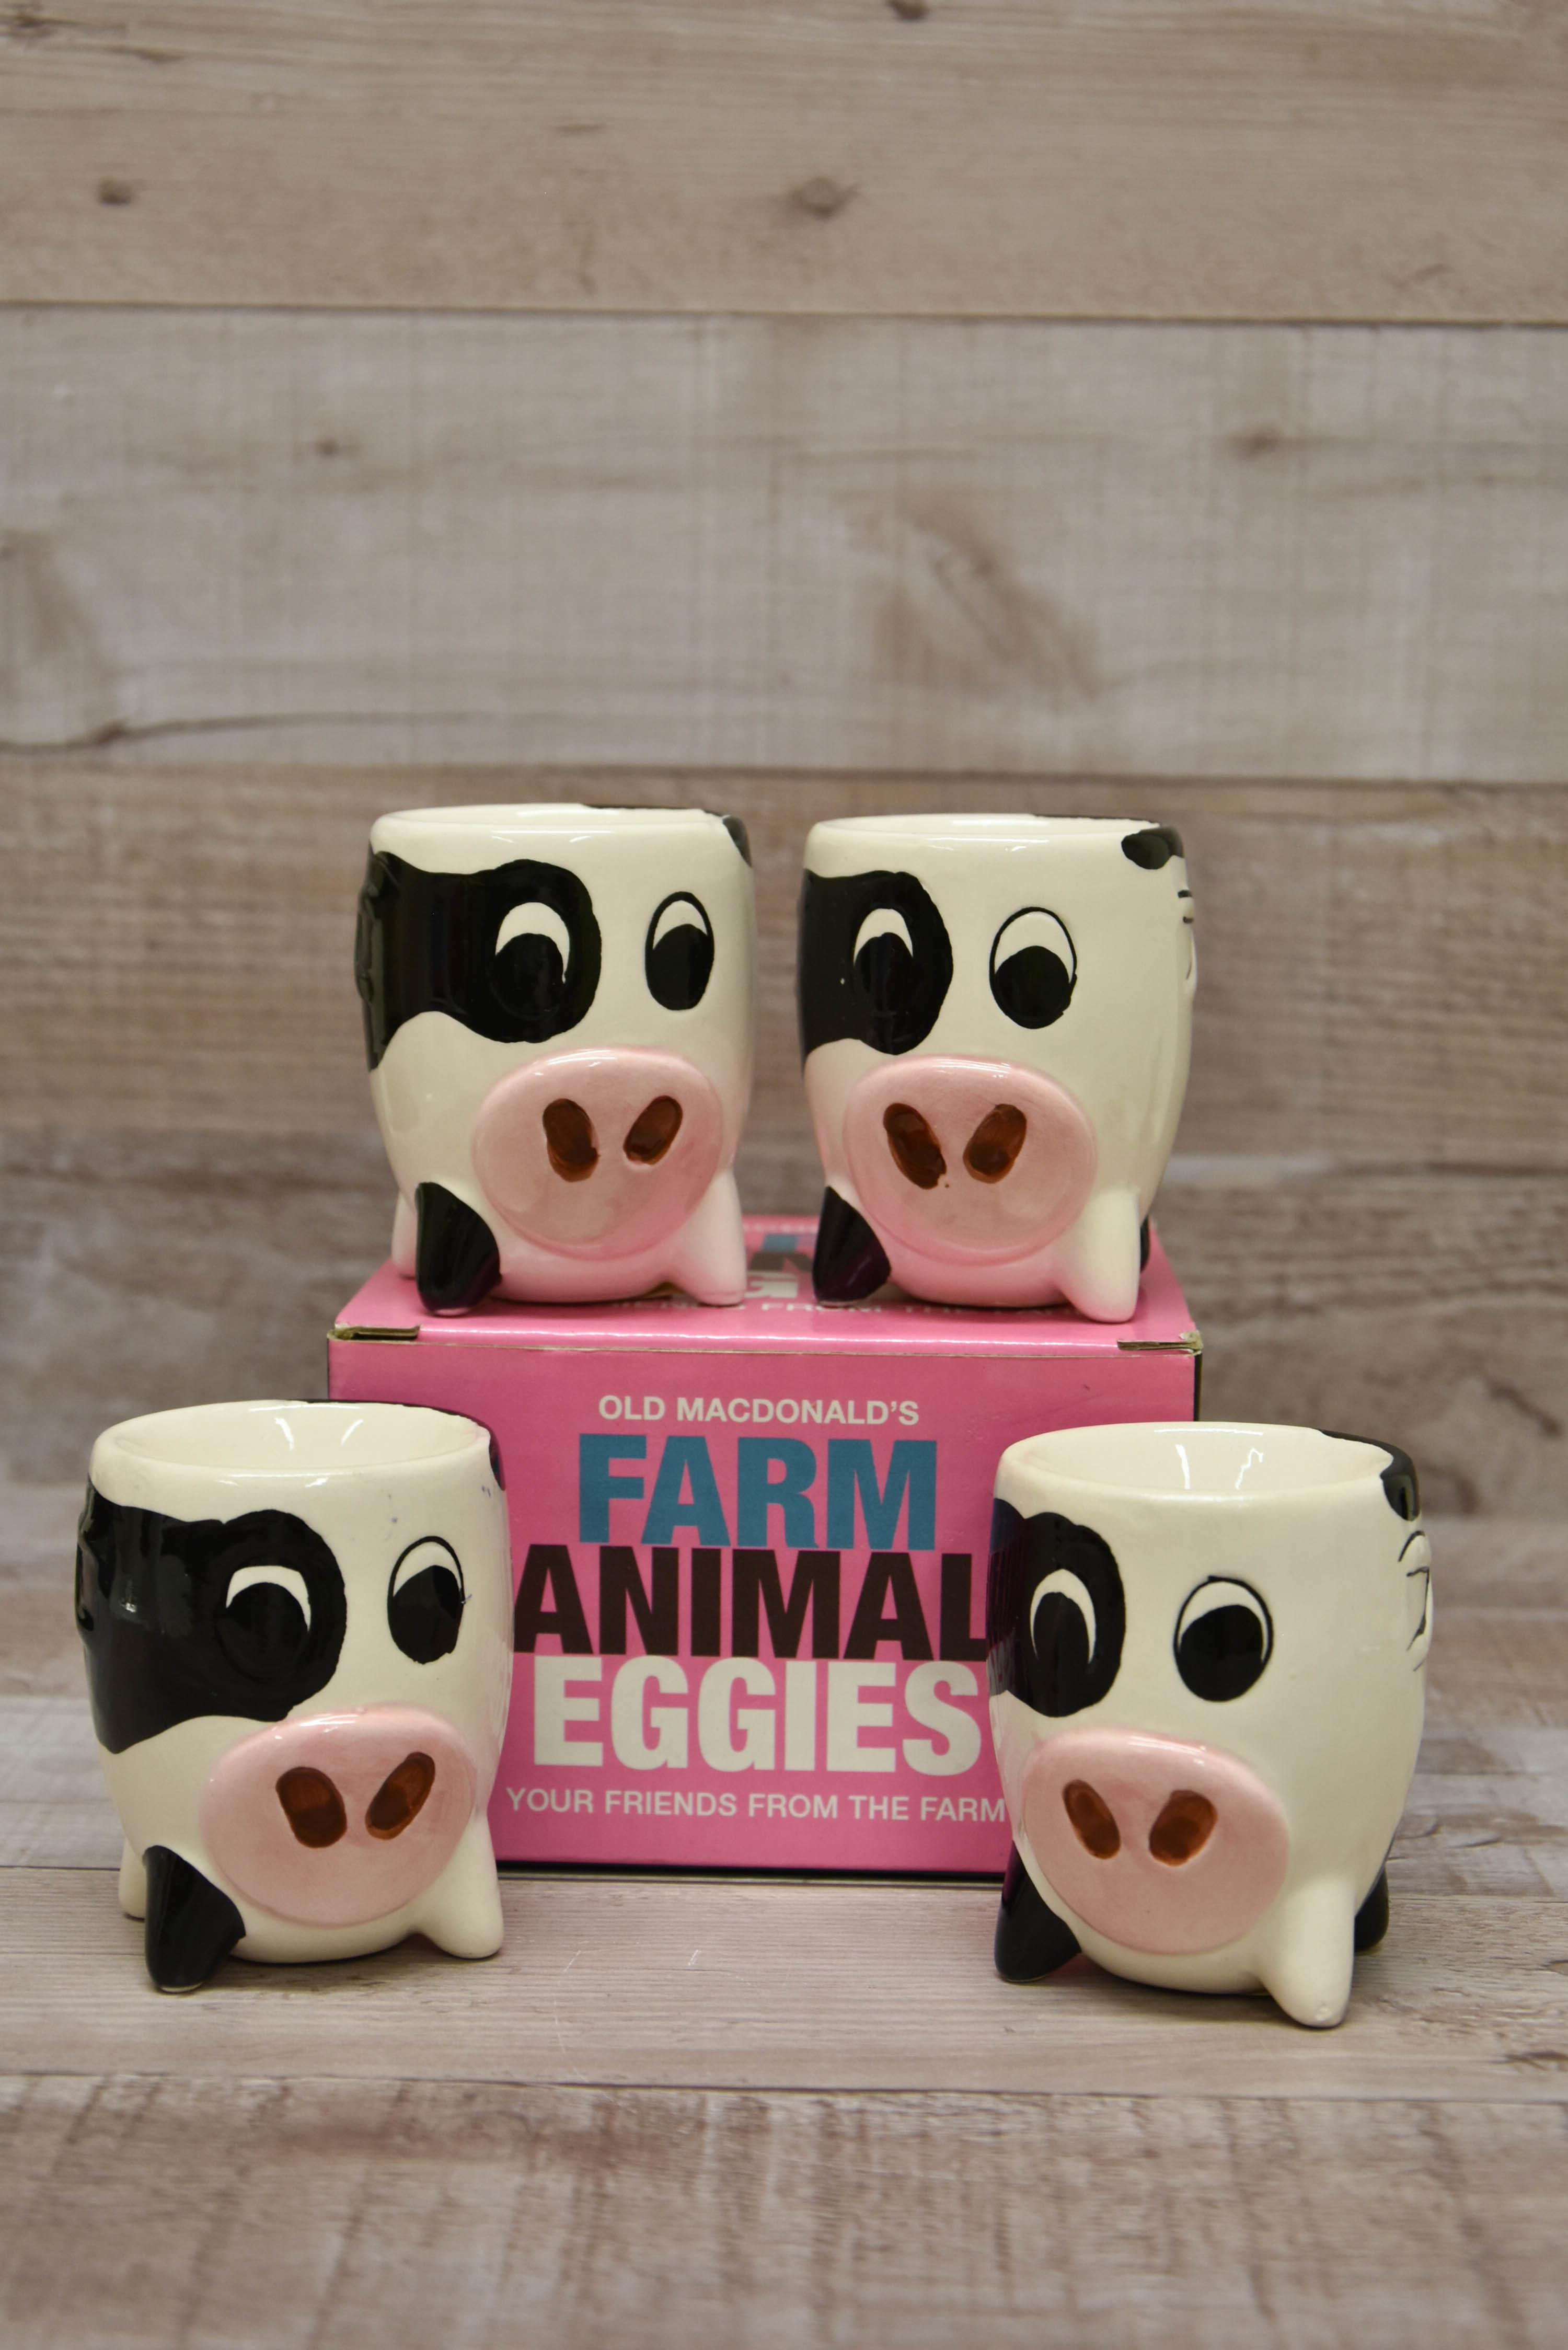 Old Macdonalds Farm Animal Eggies Set of Four Cow Shaped Egg Cups-4825